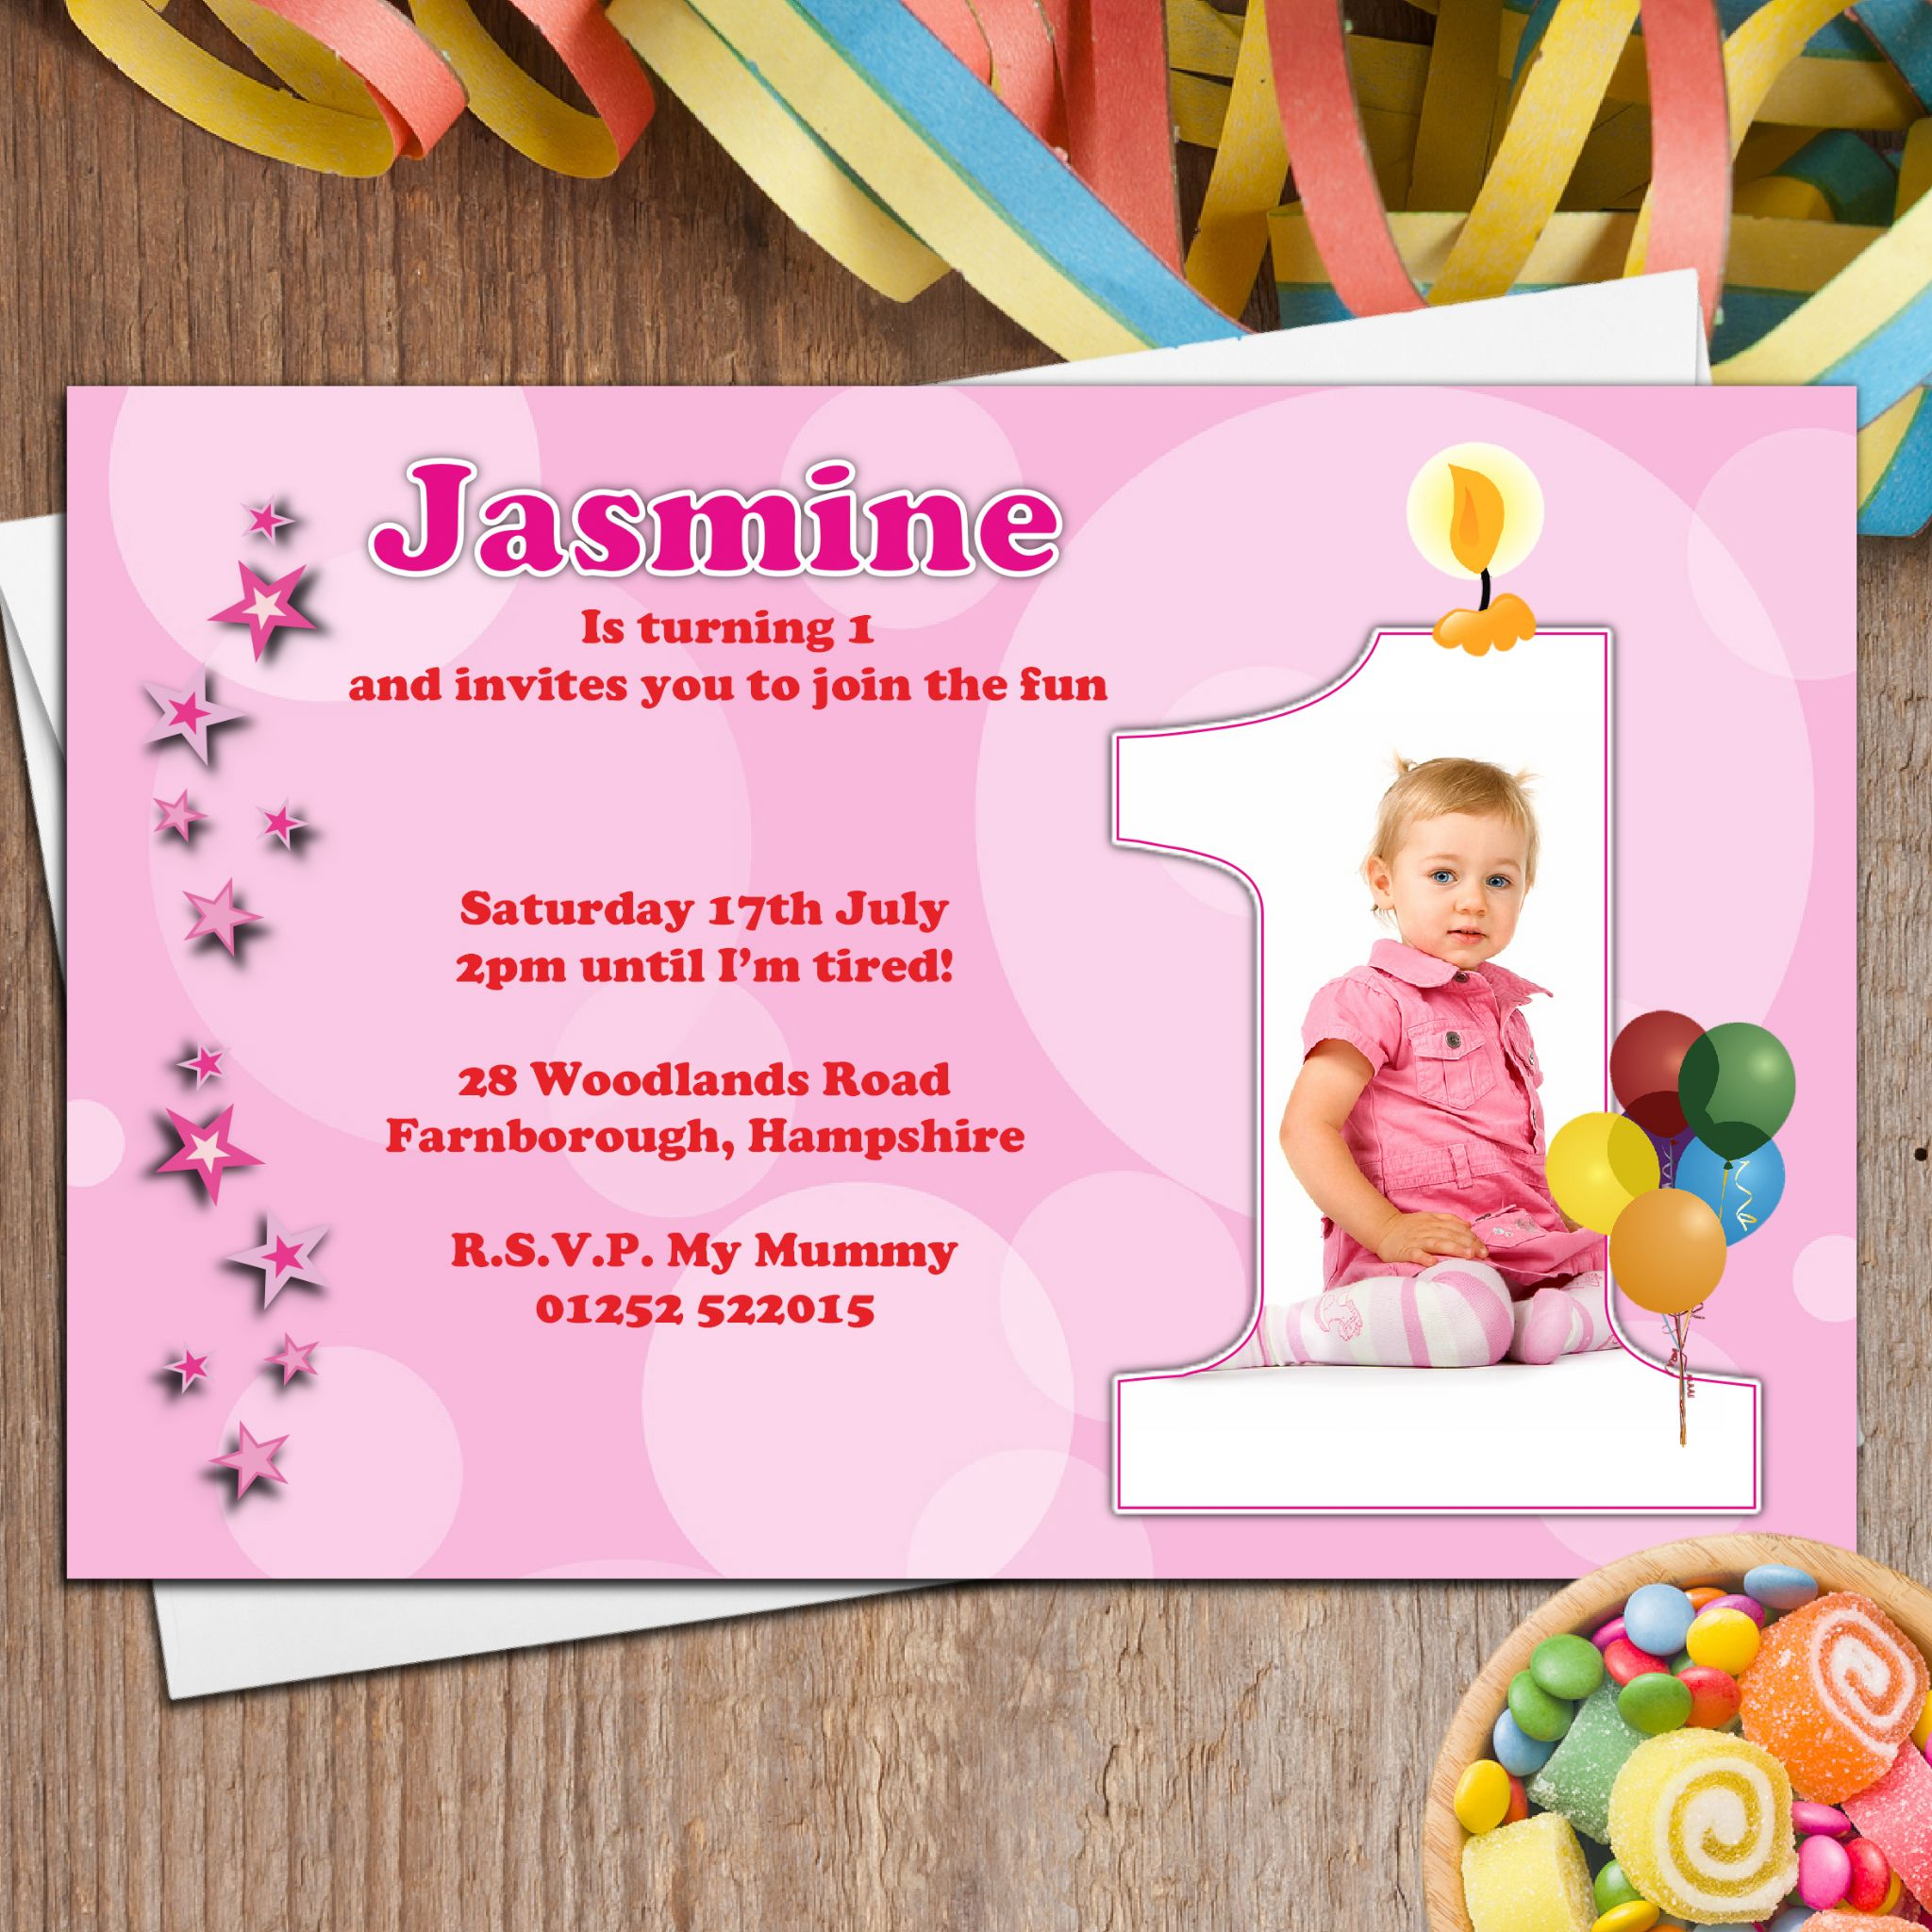 1st birthday invitation wording in hindi ; birthday-girl-first-1st-birthday-party-invitation-card-with-colorful-balloon-pictures-and-little-girl-photo